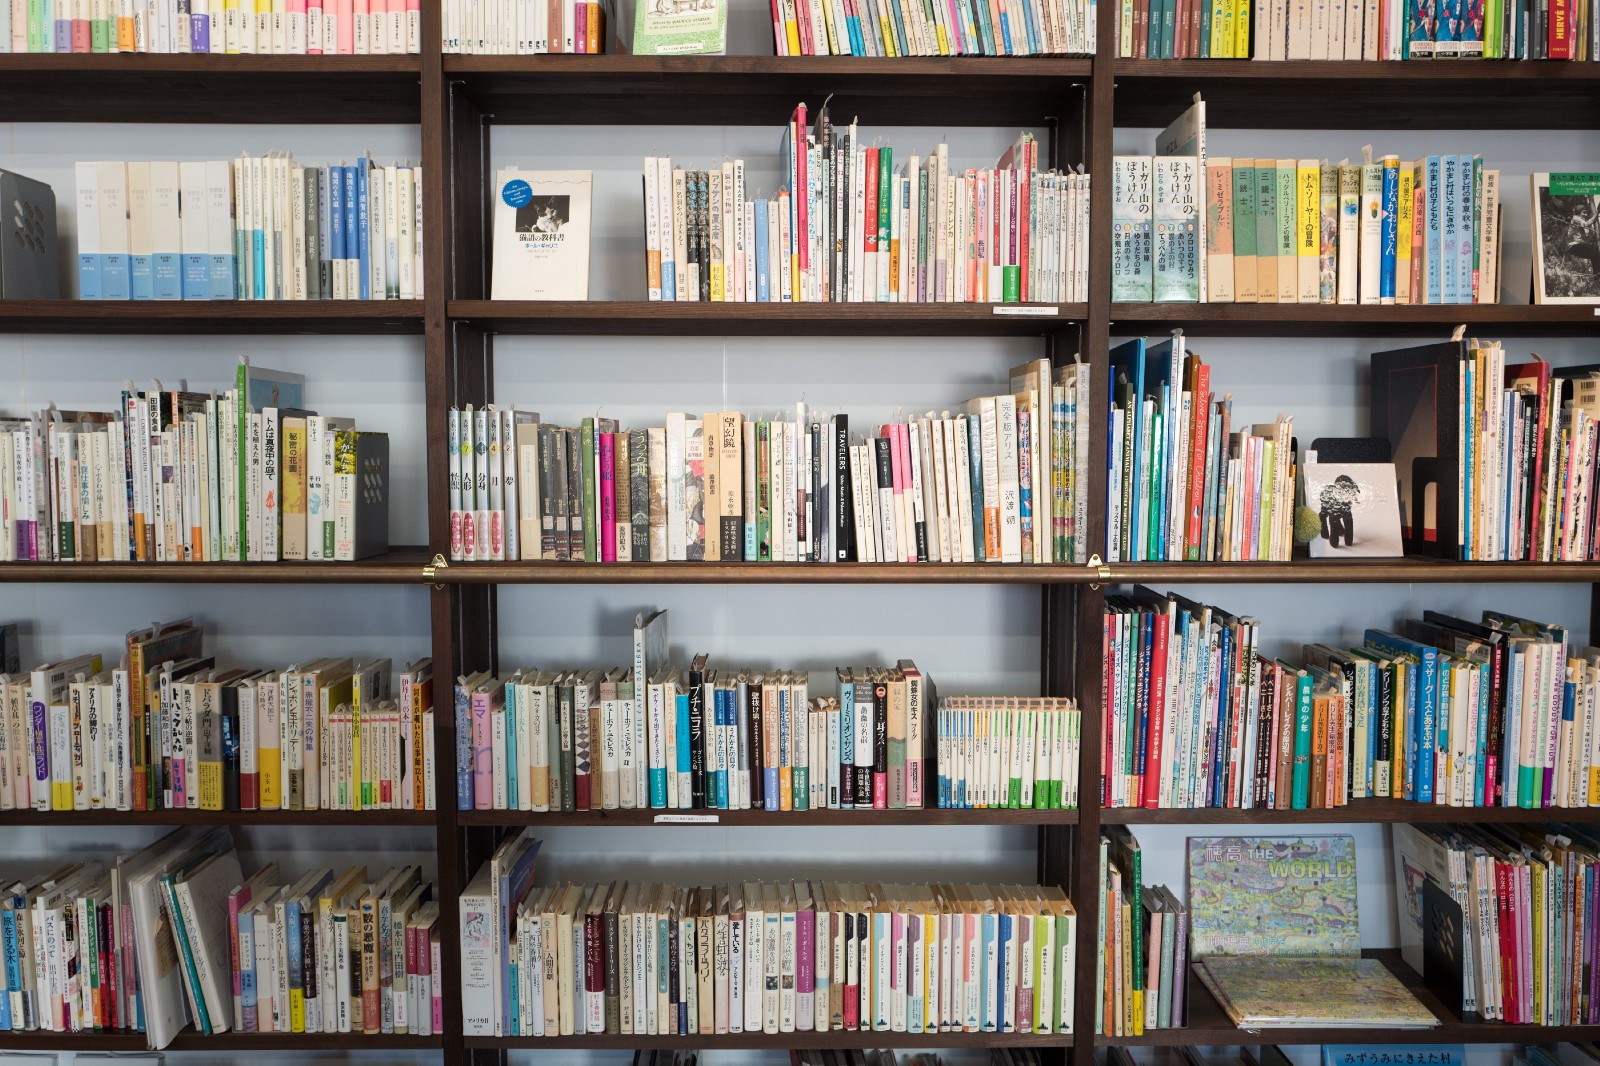 Here Are 10 Books You Must Have On Your Bookshelf